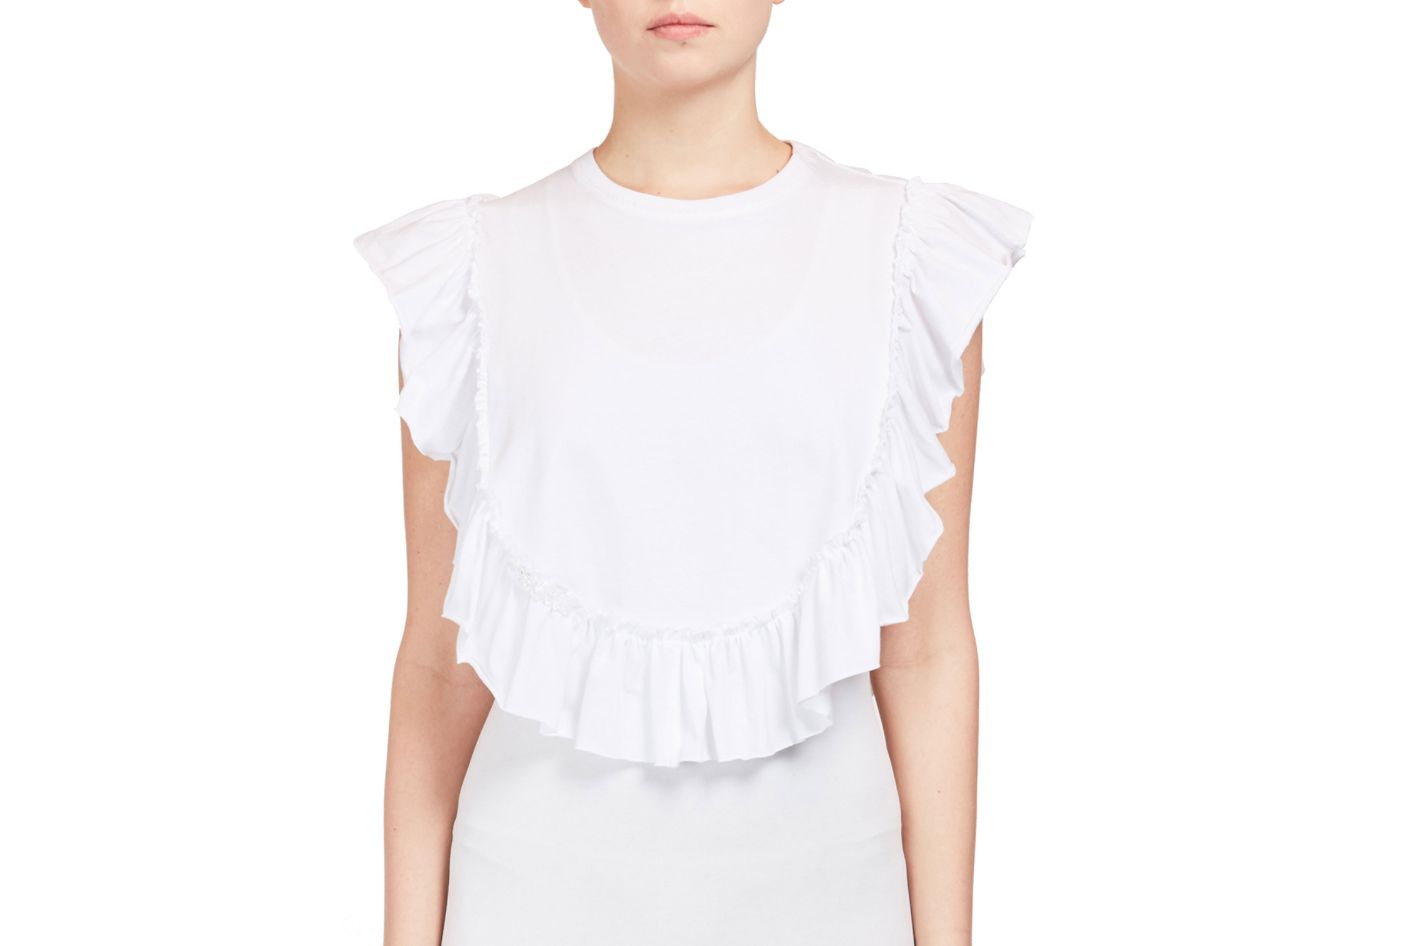 Simone Rocha Ruffled Cotton Bib